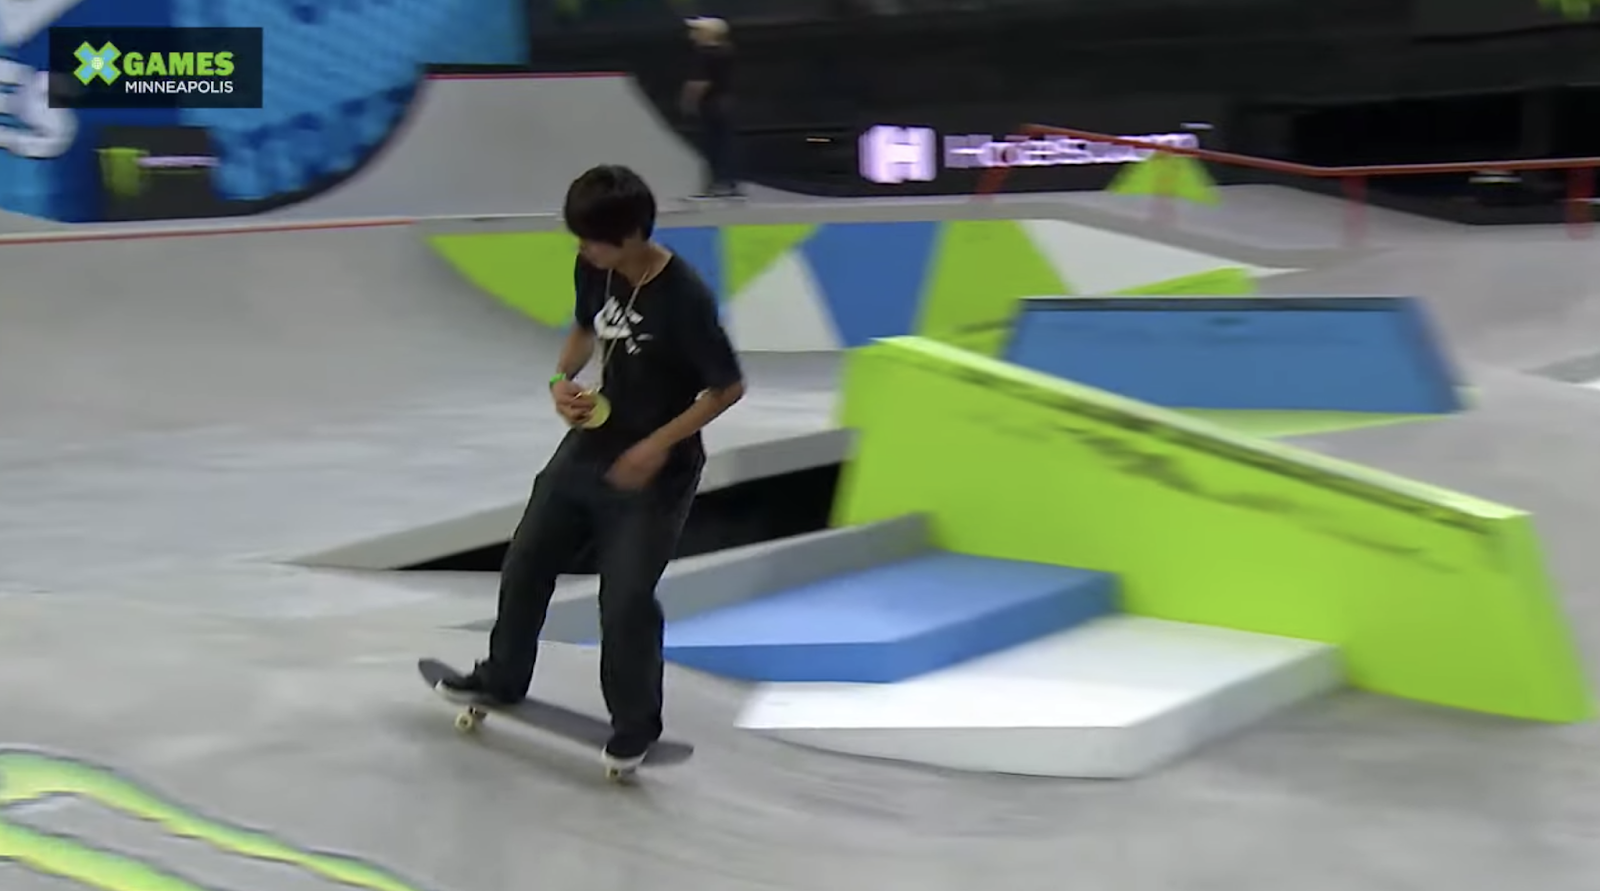 Japan Took Over X-Games in Minneapolis, Horigome on Top